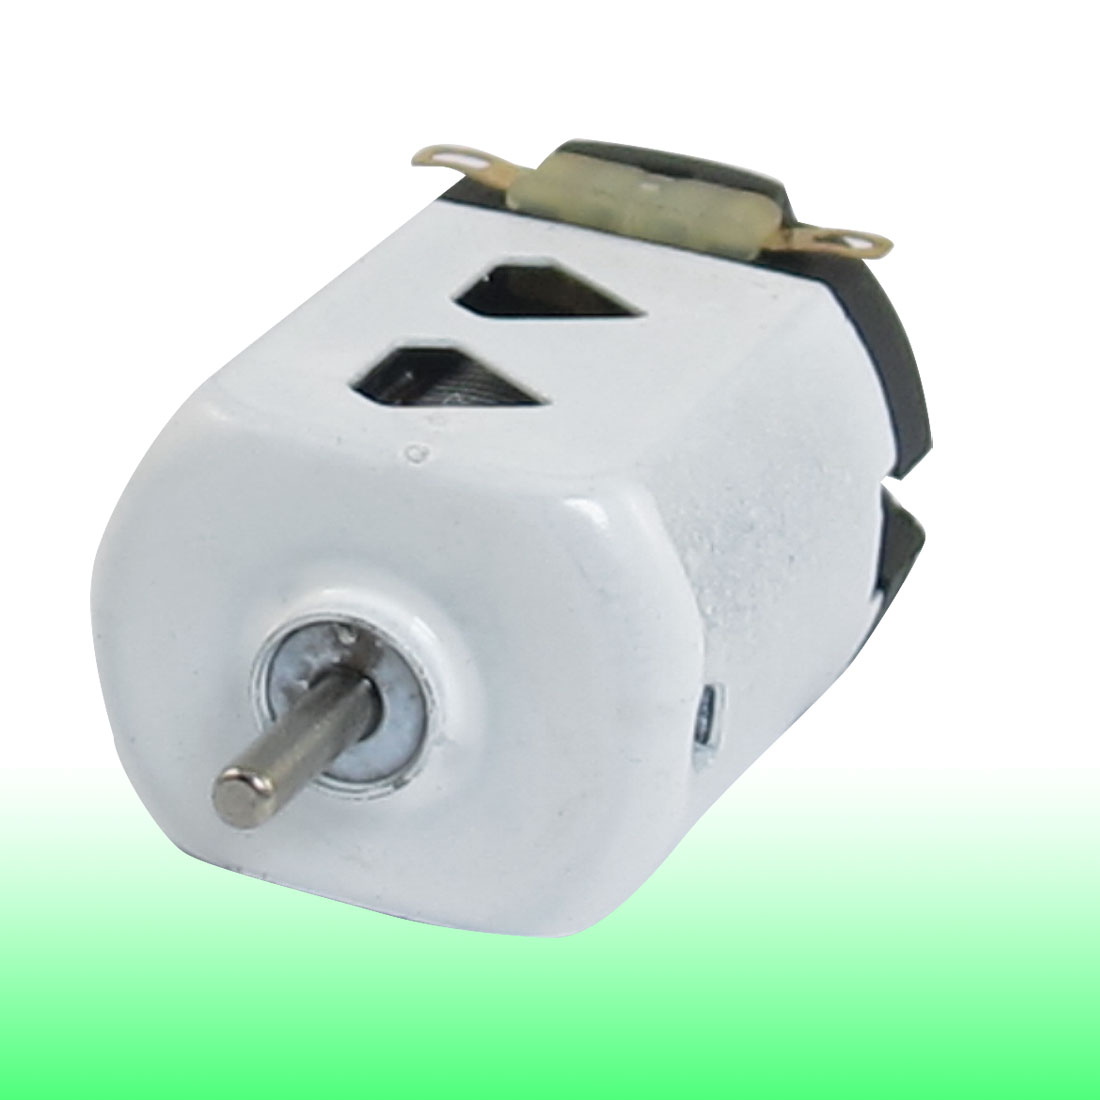 Shaft Diameter 2mm DC 9000RPM 400mA White Black Flat Electric 130 Motor for Four-wheel Car 27mm x 20mm x 15mm (L*W*T)